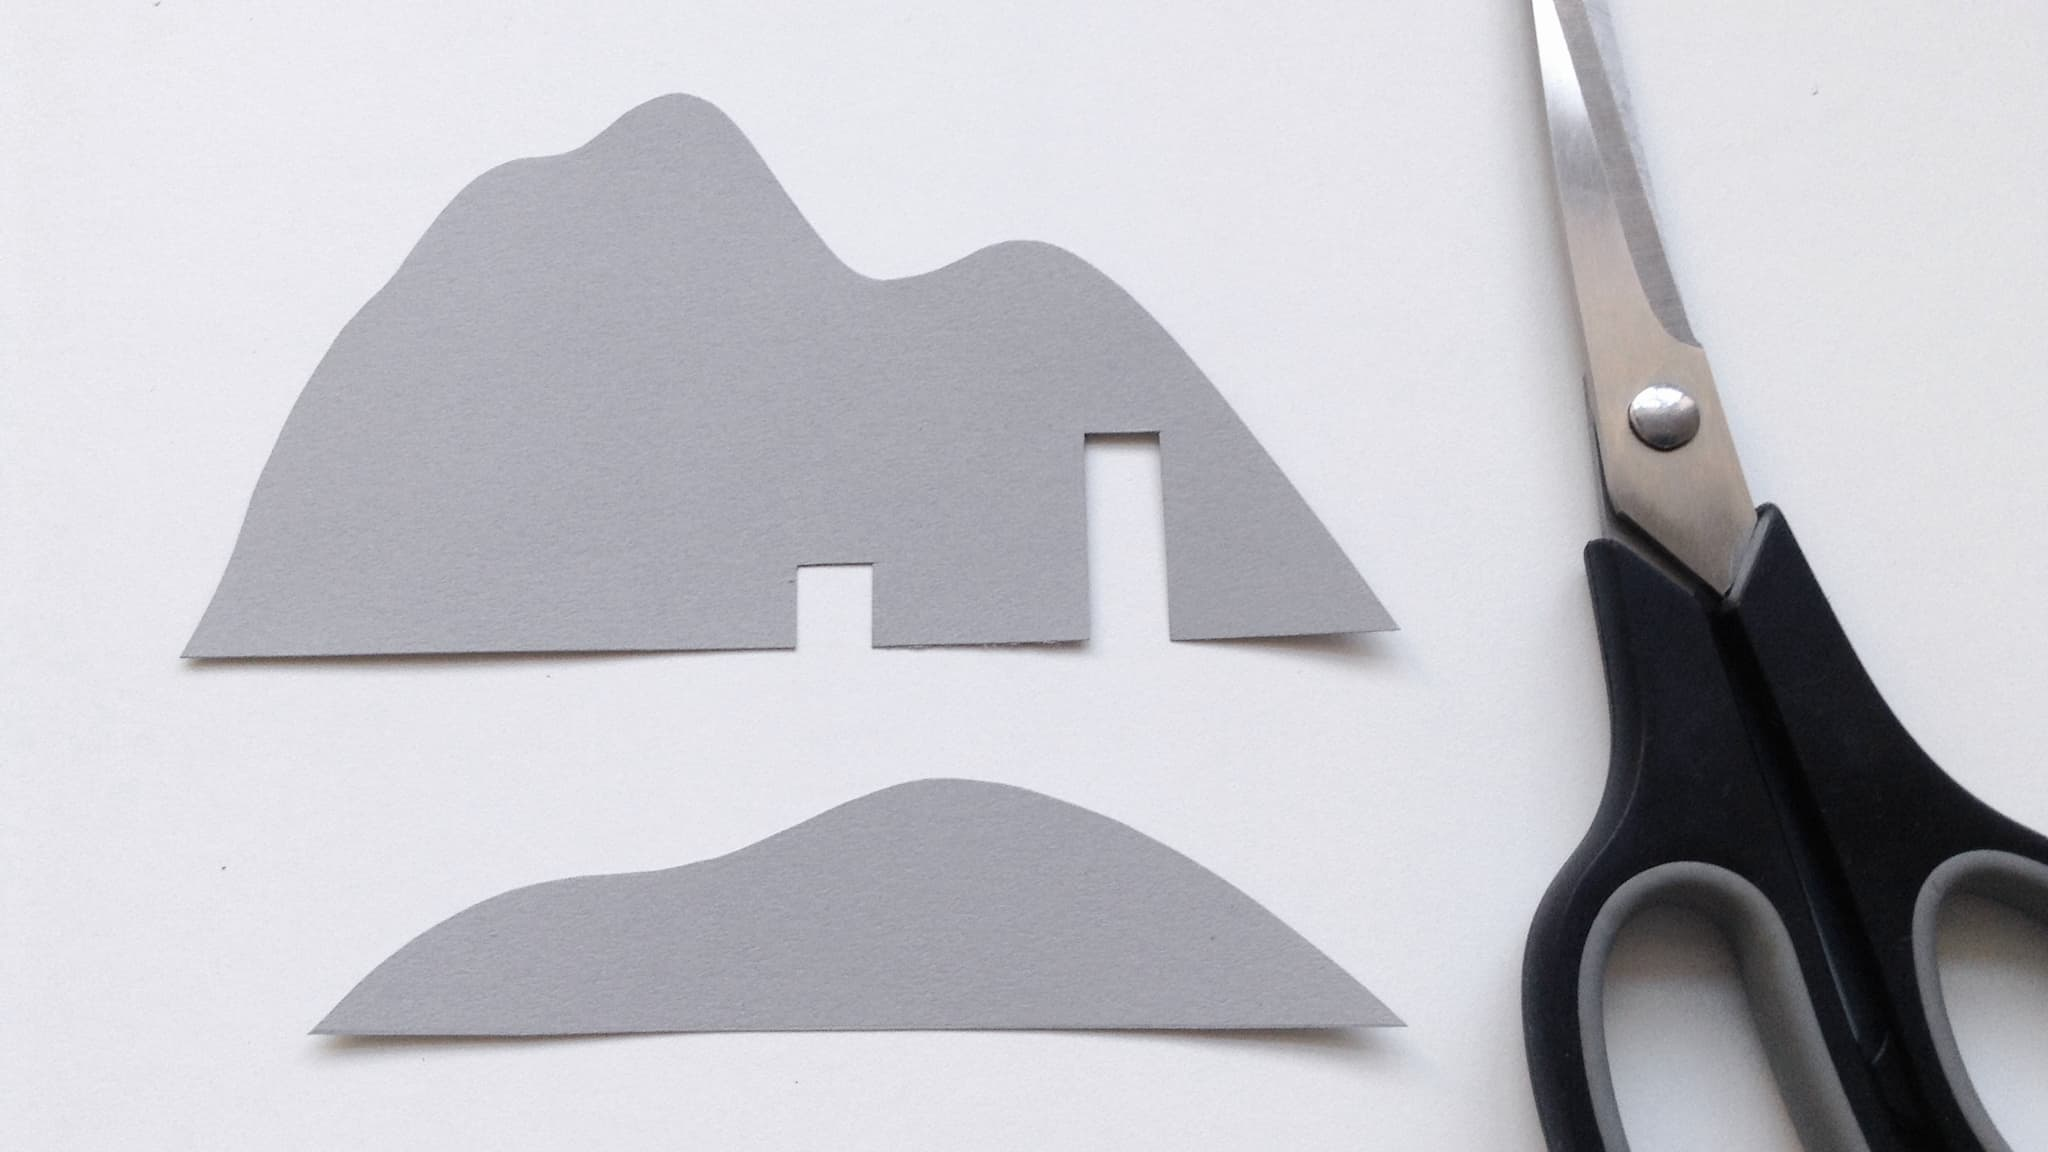 Cut out the mountain shapes from the grey card